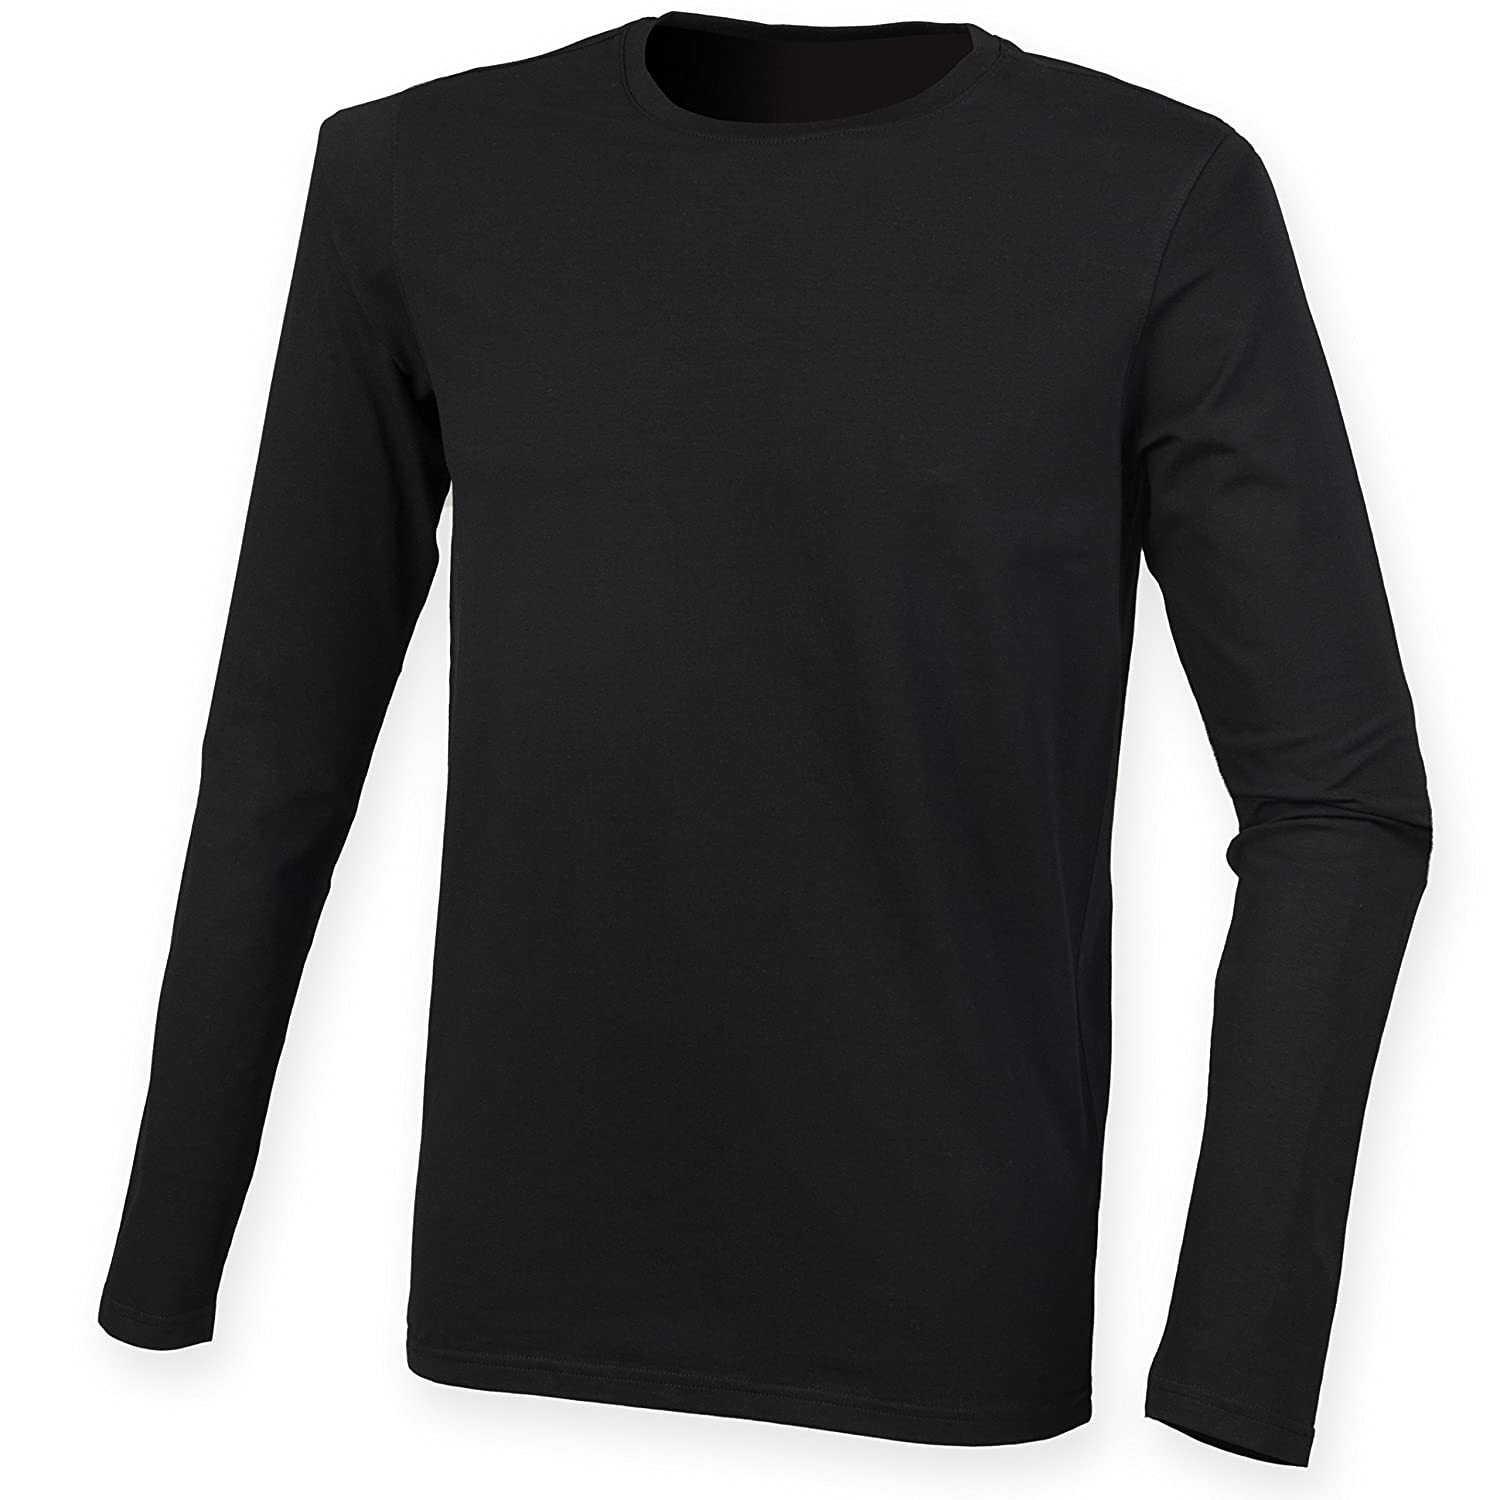 Skinni Fit Skinnifit Men's Long Sleeved Stretch T-Shirt SF124:  Amazon.co.uk: Clothing